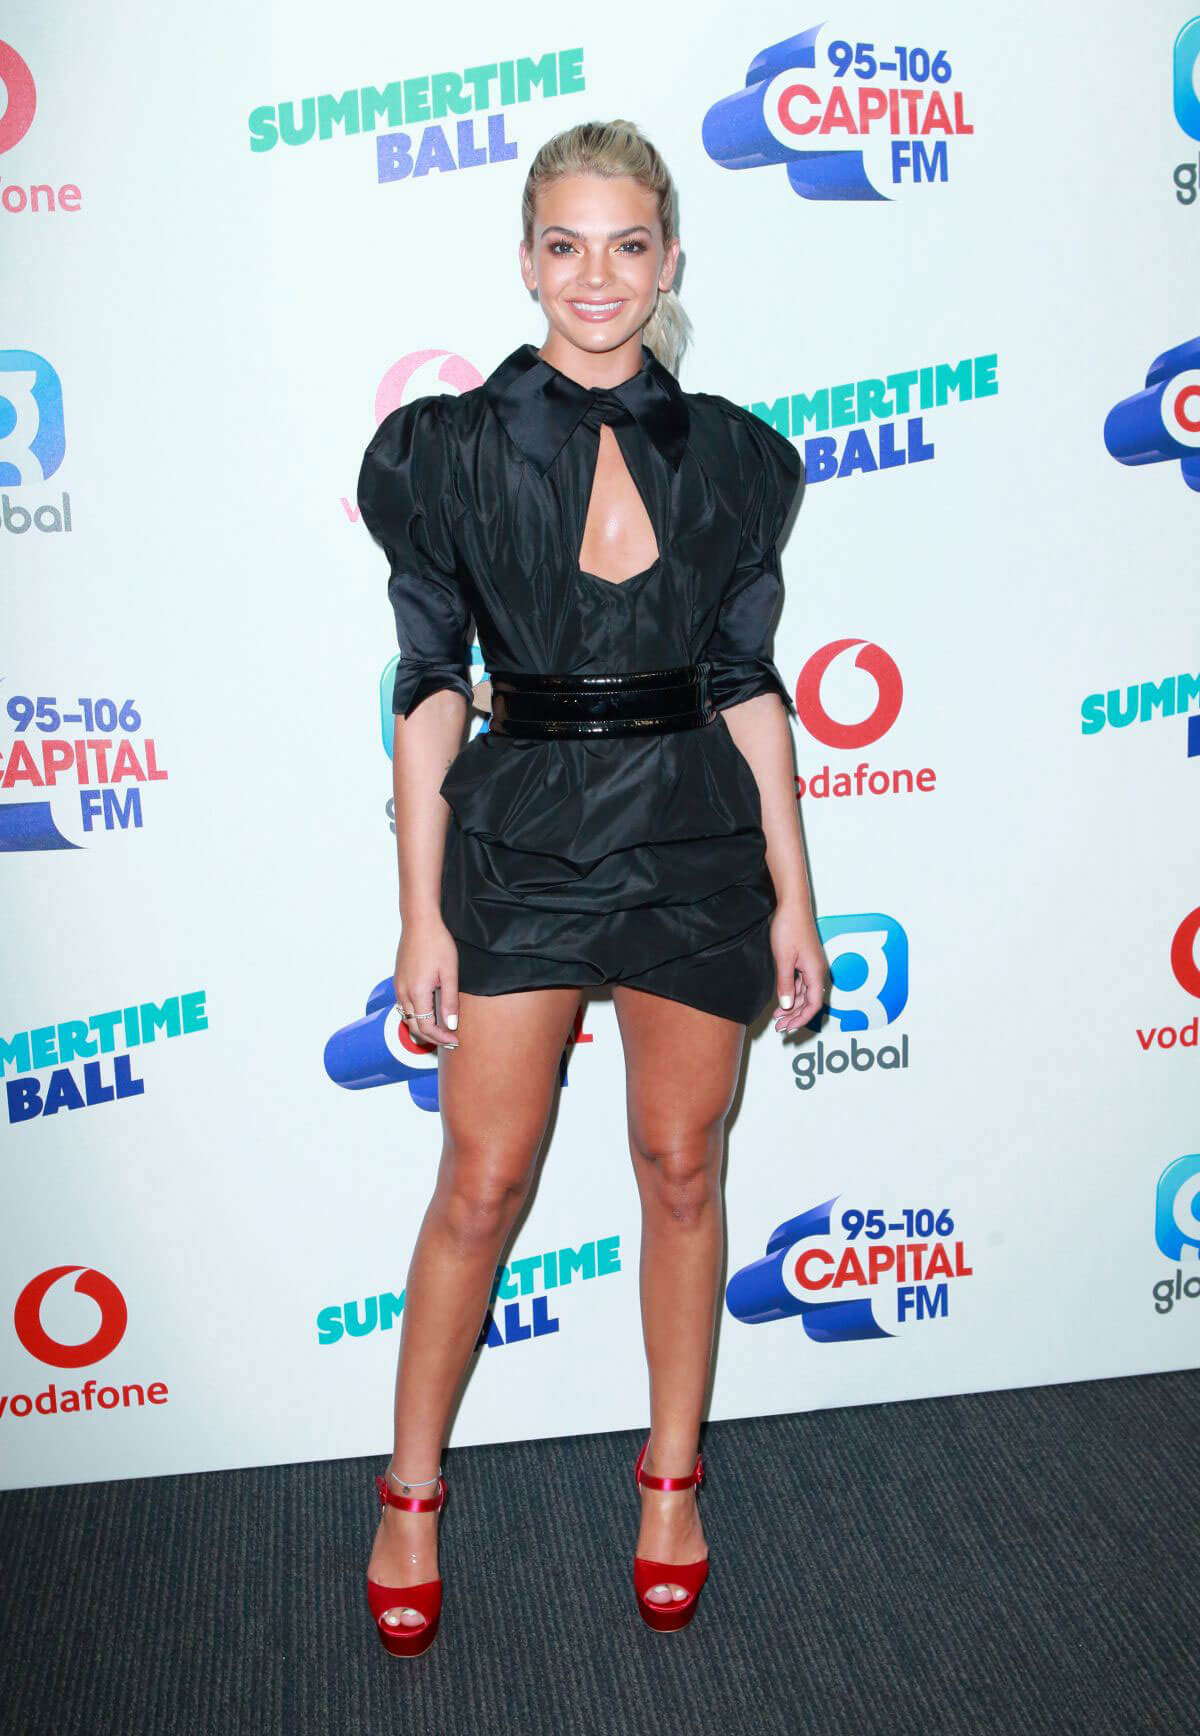 Louisa Johnson at Capital Radio Summertime Ball 2018 in London 2018/06/09 14